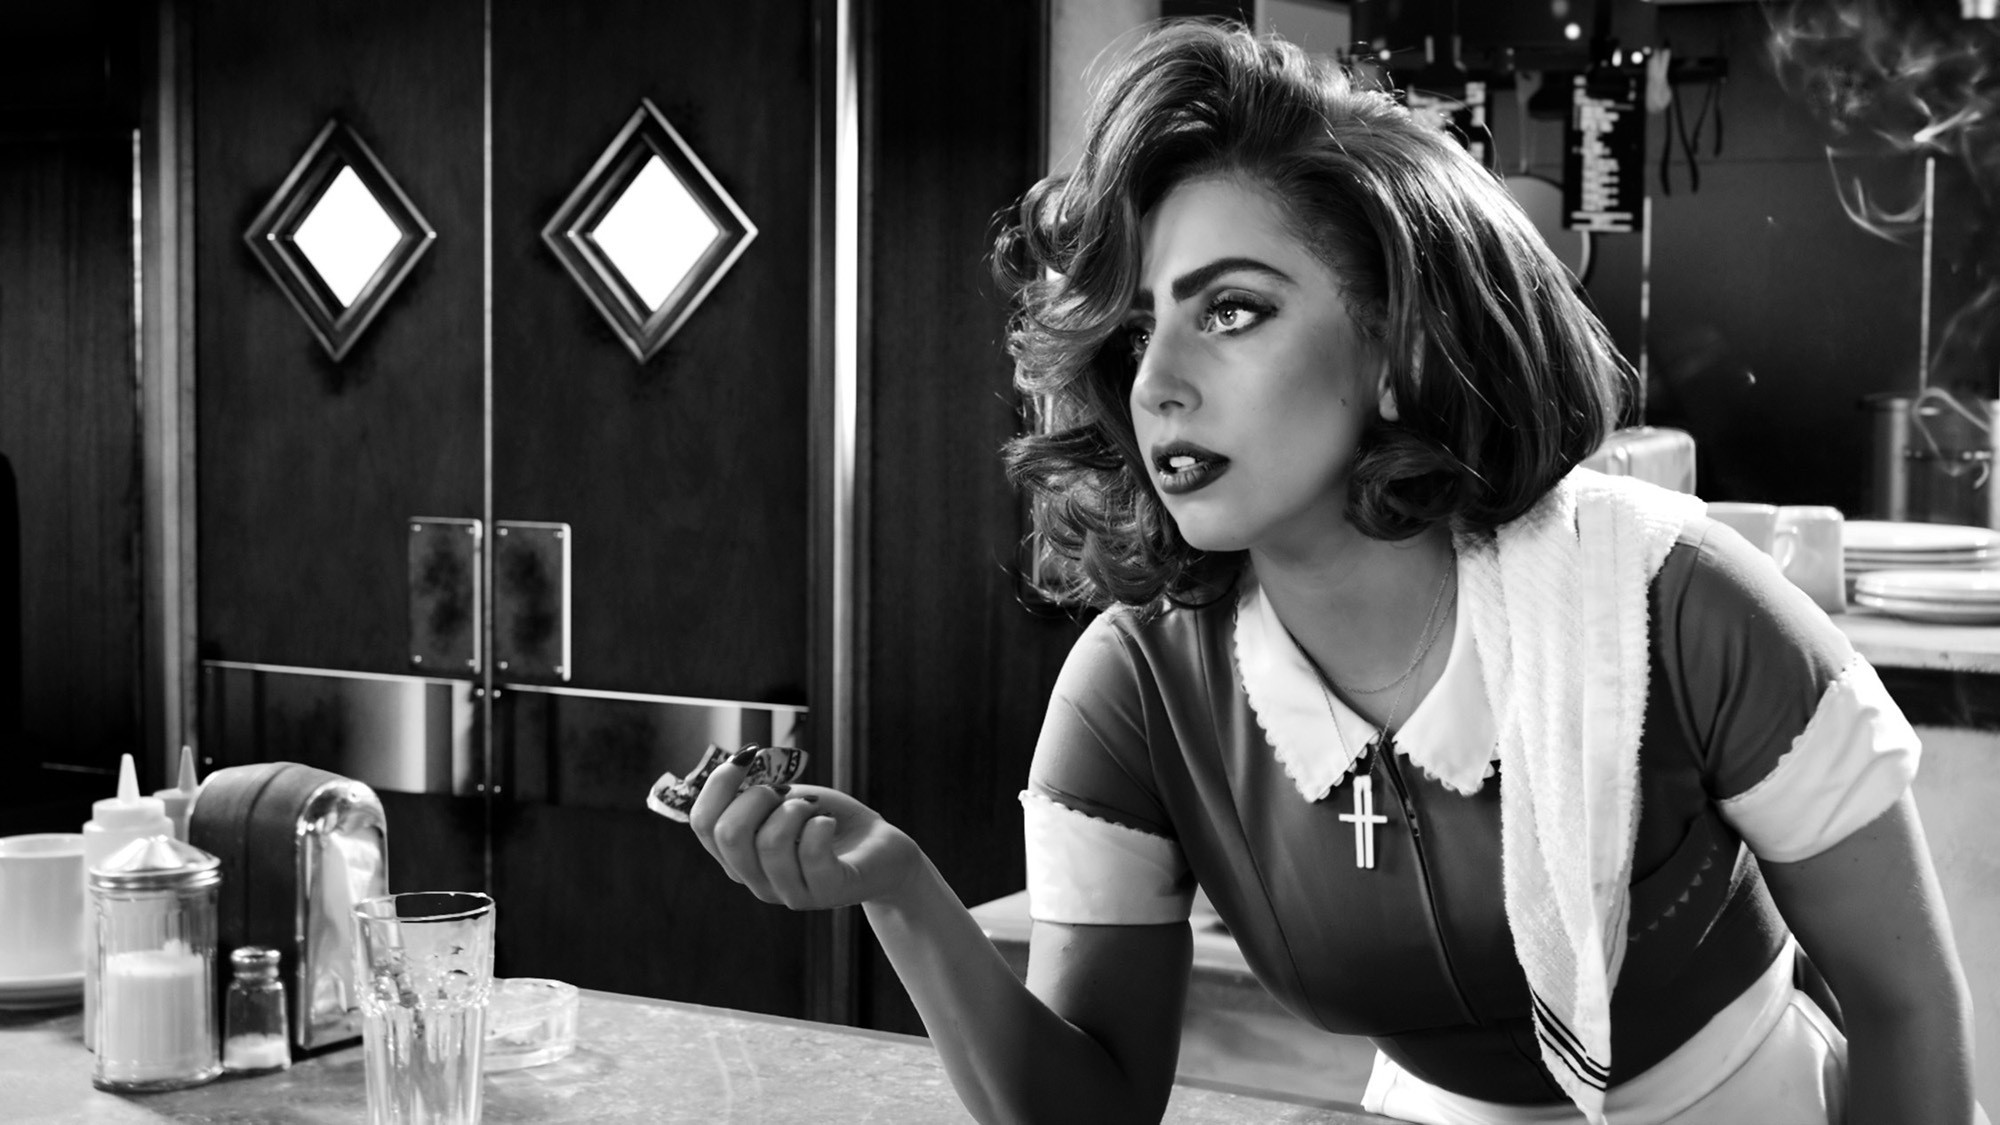 … American Horror Story: Hotel. Lady-Gaga-in-Sin-City-A-Dame-to-